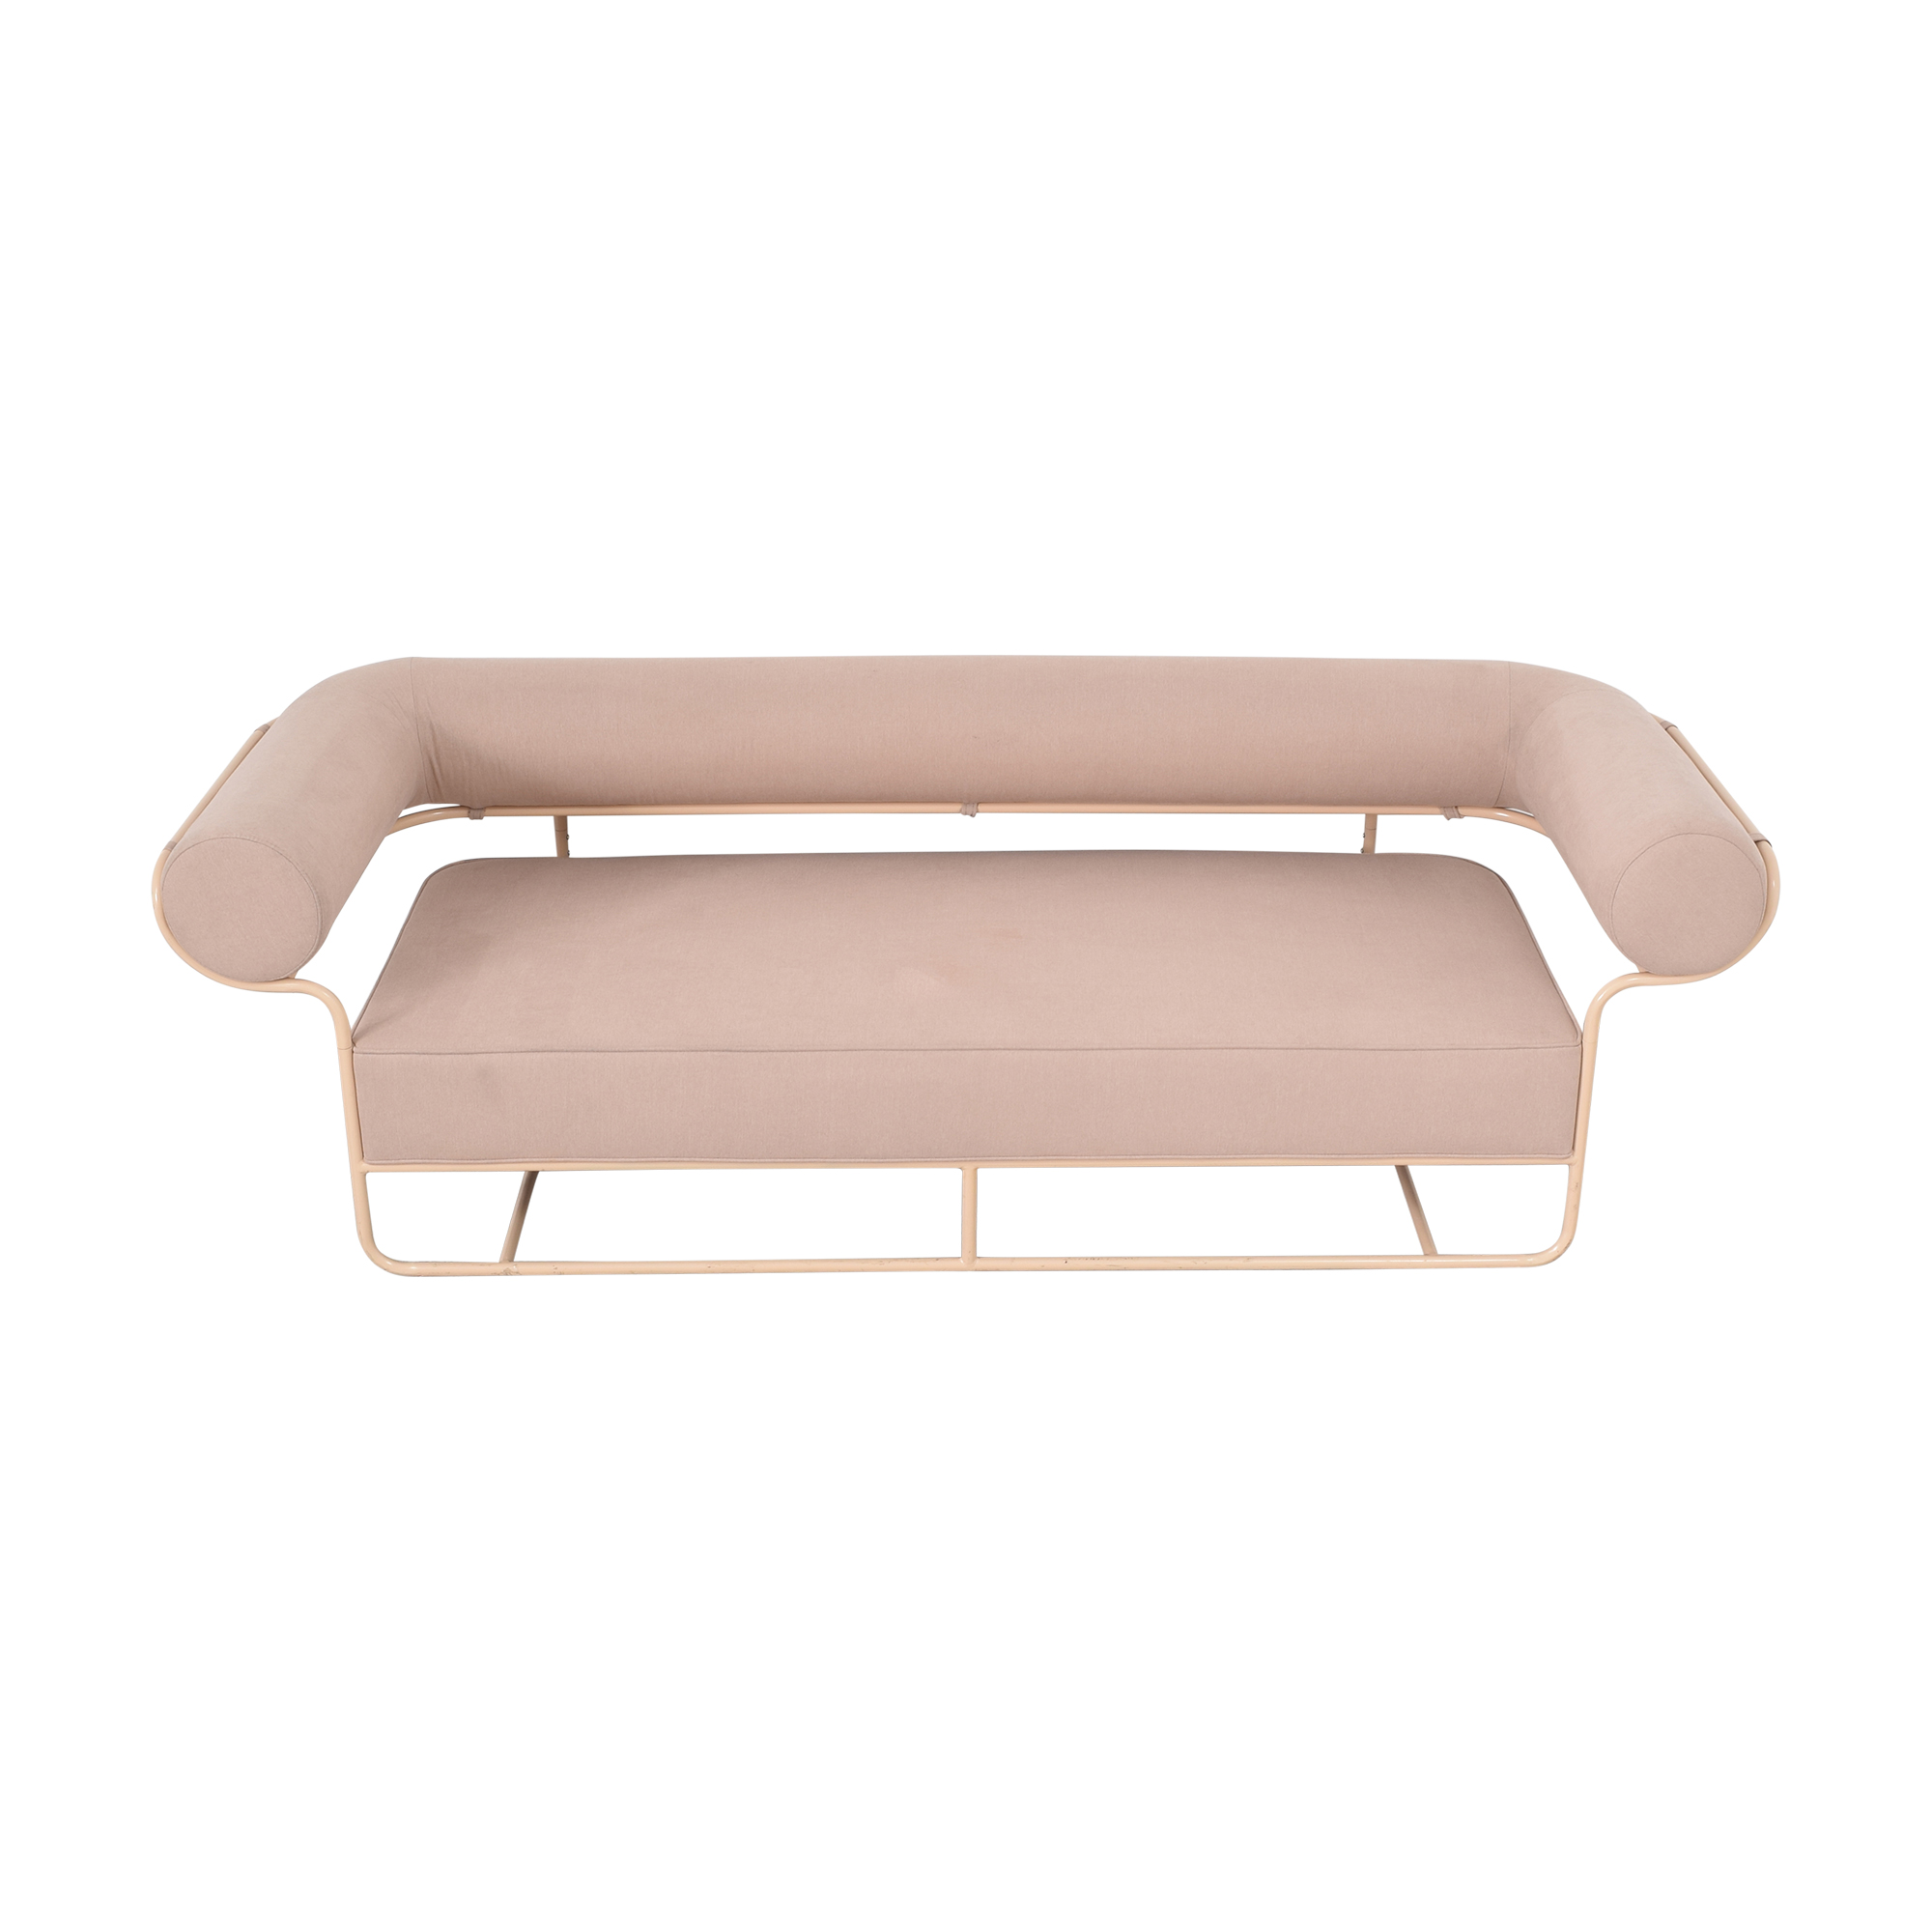 Urban Outfitters Urban Outfitters Ollie Sofa second hand